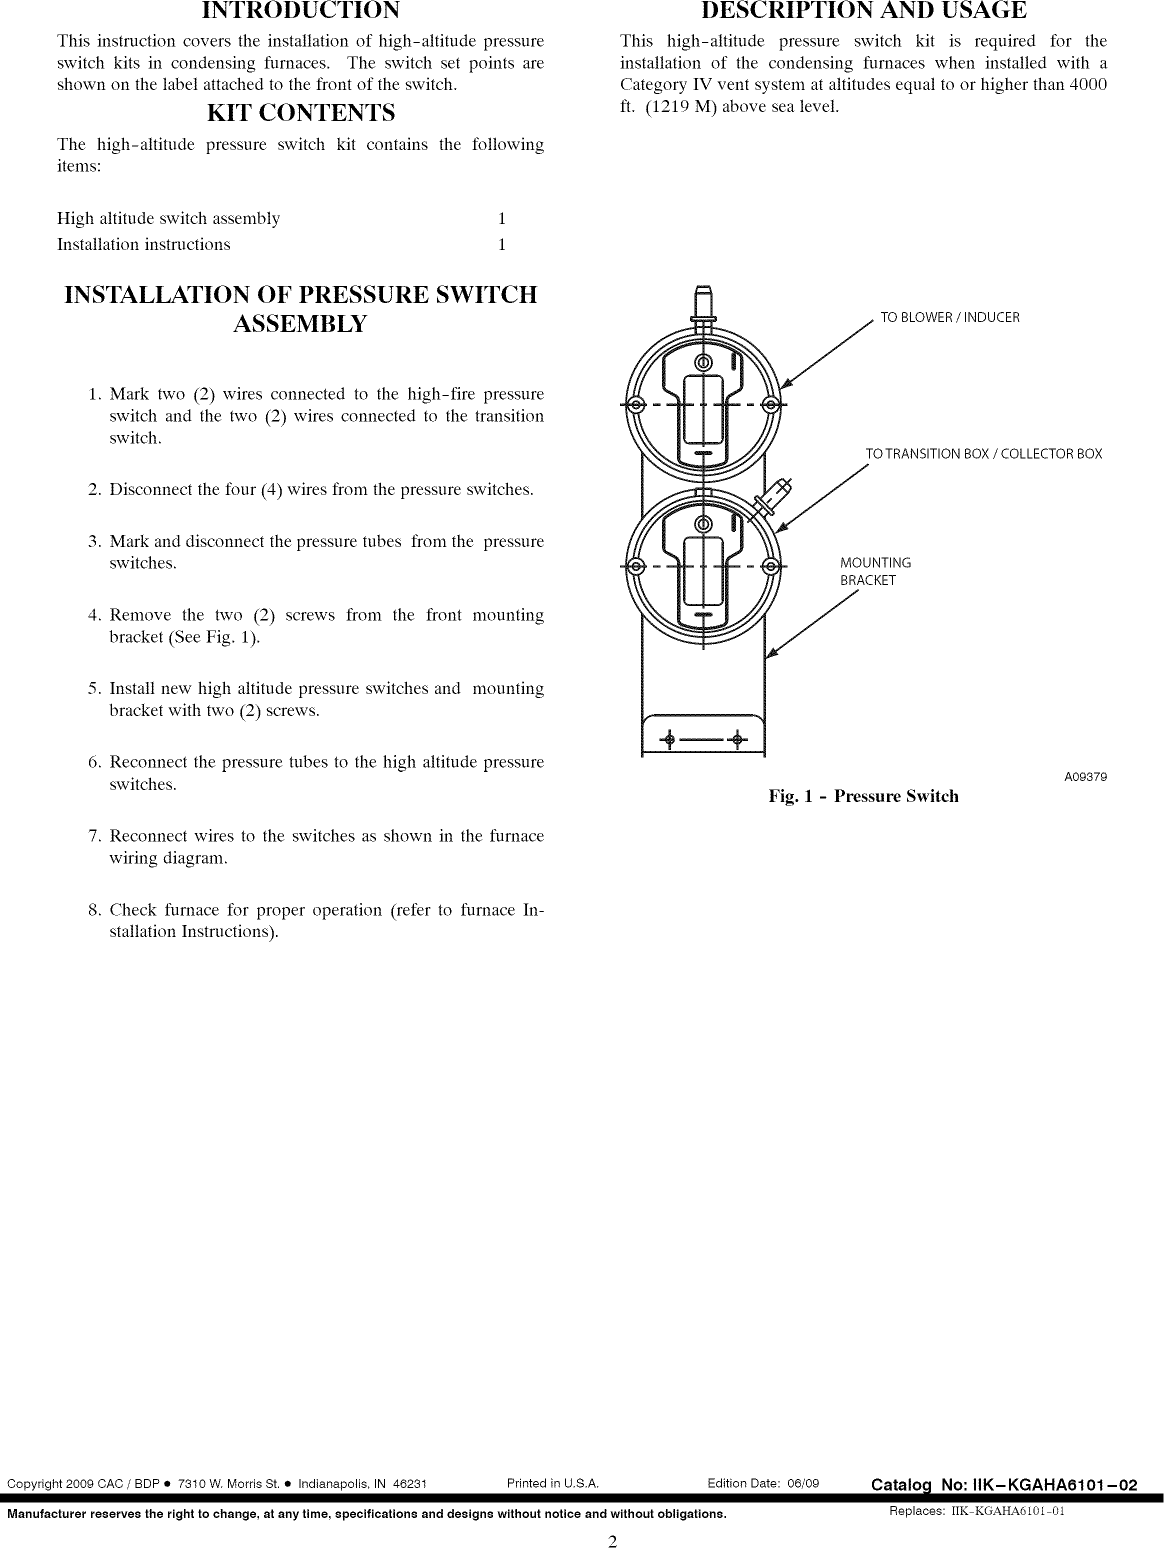 Bryant Furnace Heater Gas Manual L1001009 Wiring Diagram Page 2 Of